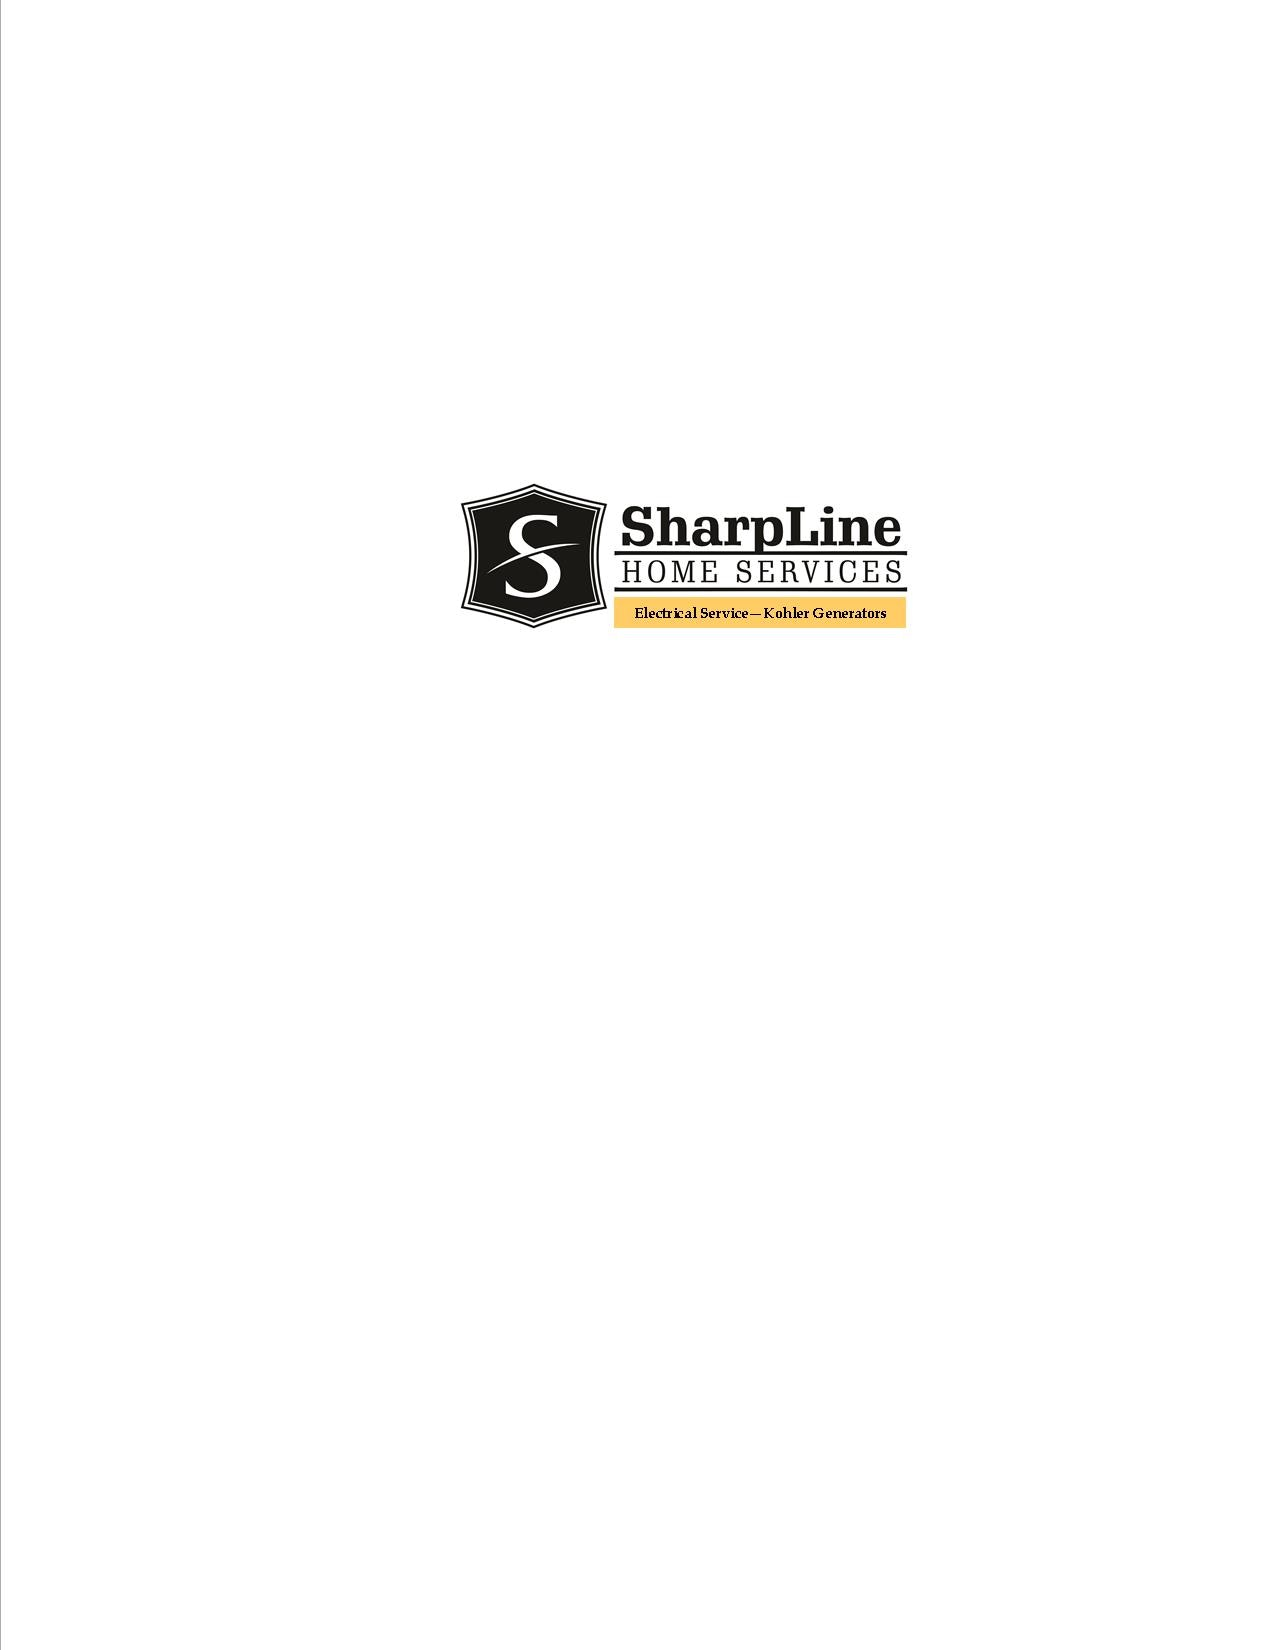 Sharpline Home Services Logo